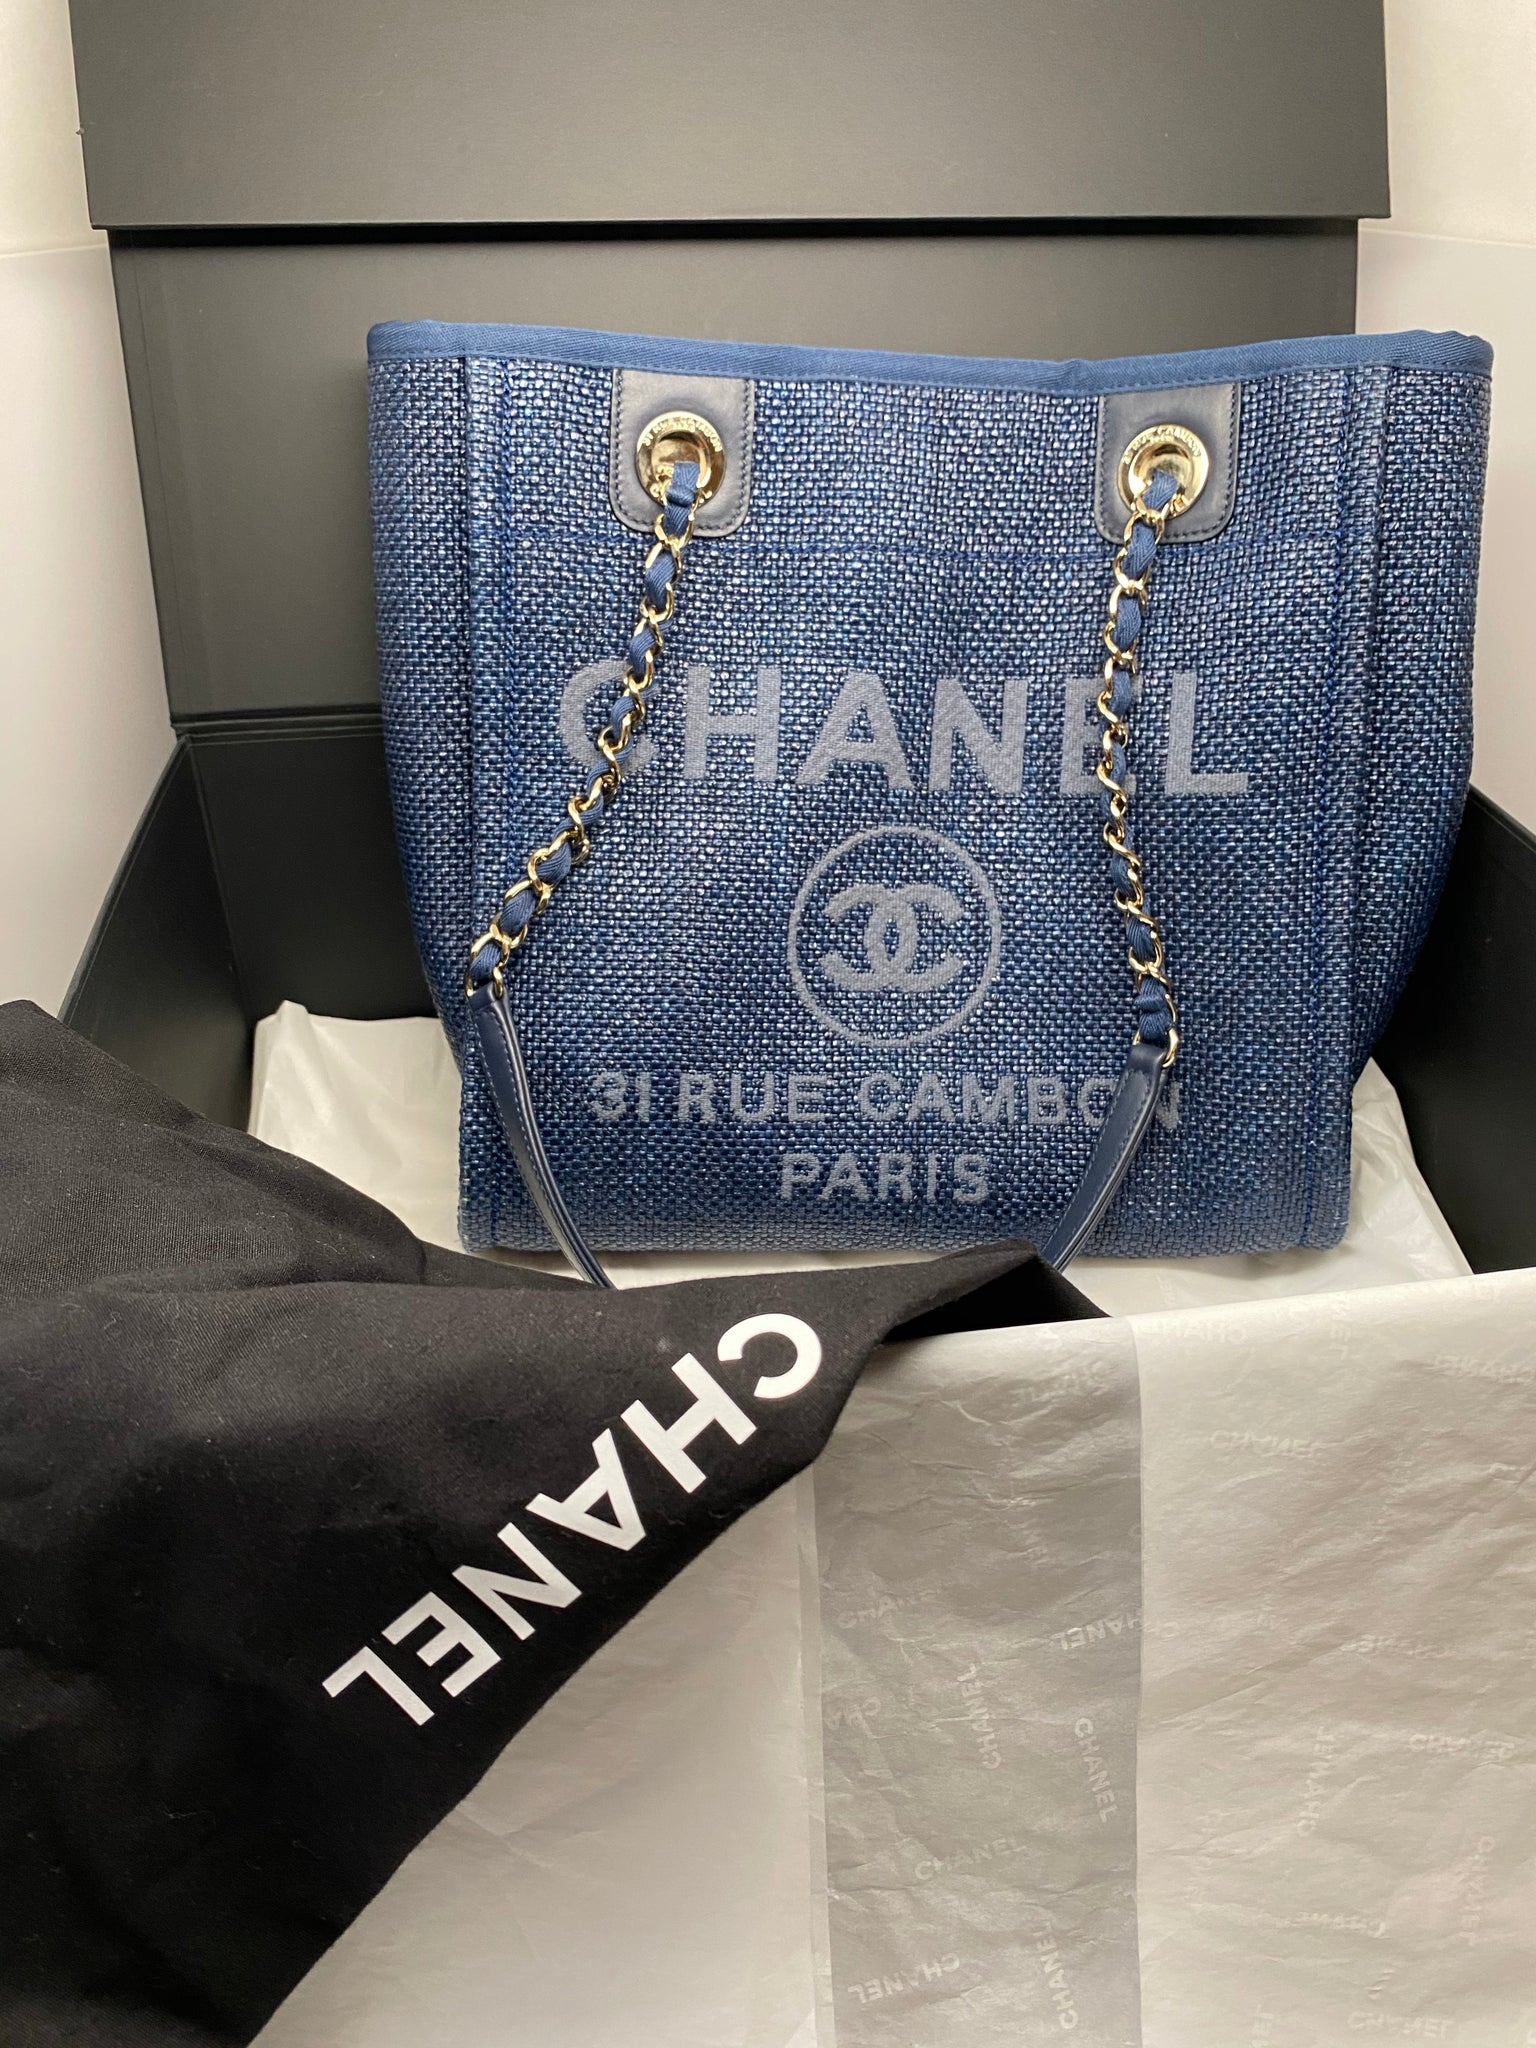 CHANEL SMALL DEAUVILLE TOTE SHOPPING BAG